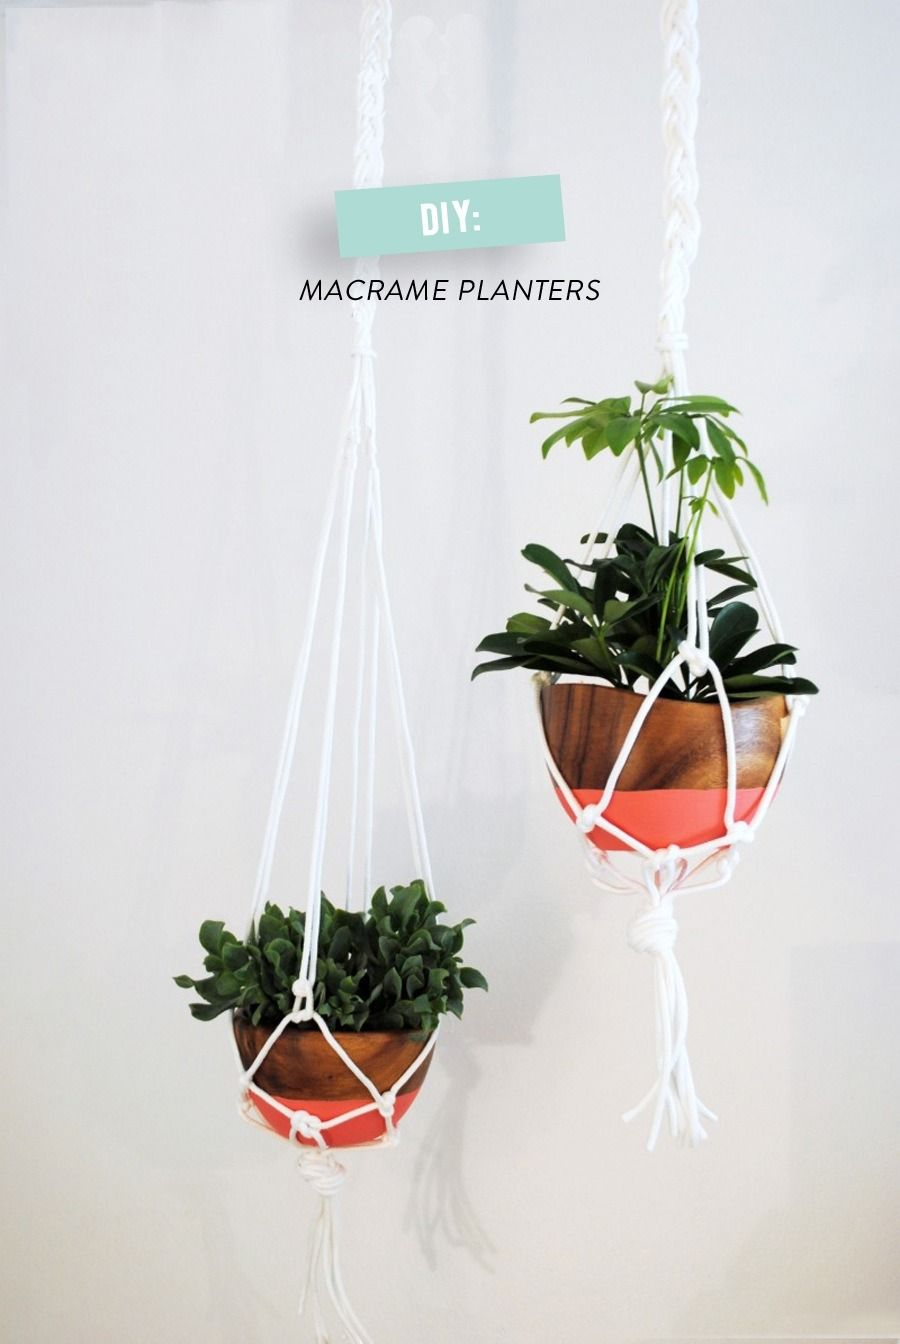 #diy, #potted-plants, #home-decor, #art-projects, #crafting, #plants, #macrame, #hanging, #hanging-planter, #planter